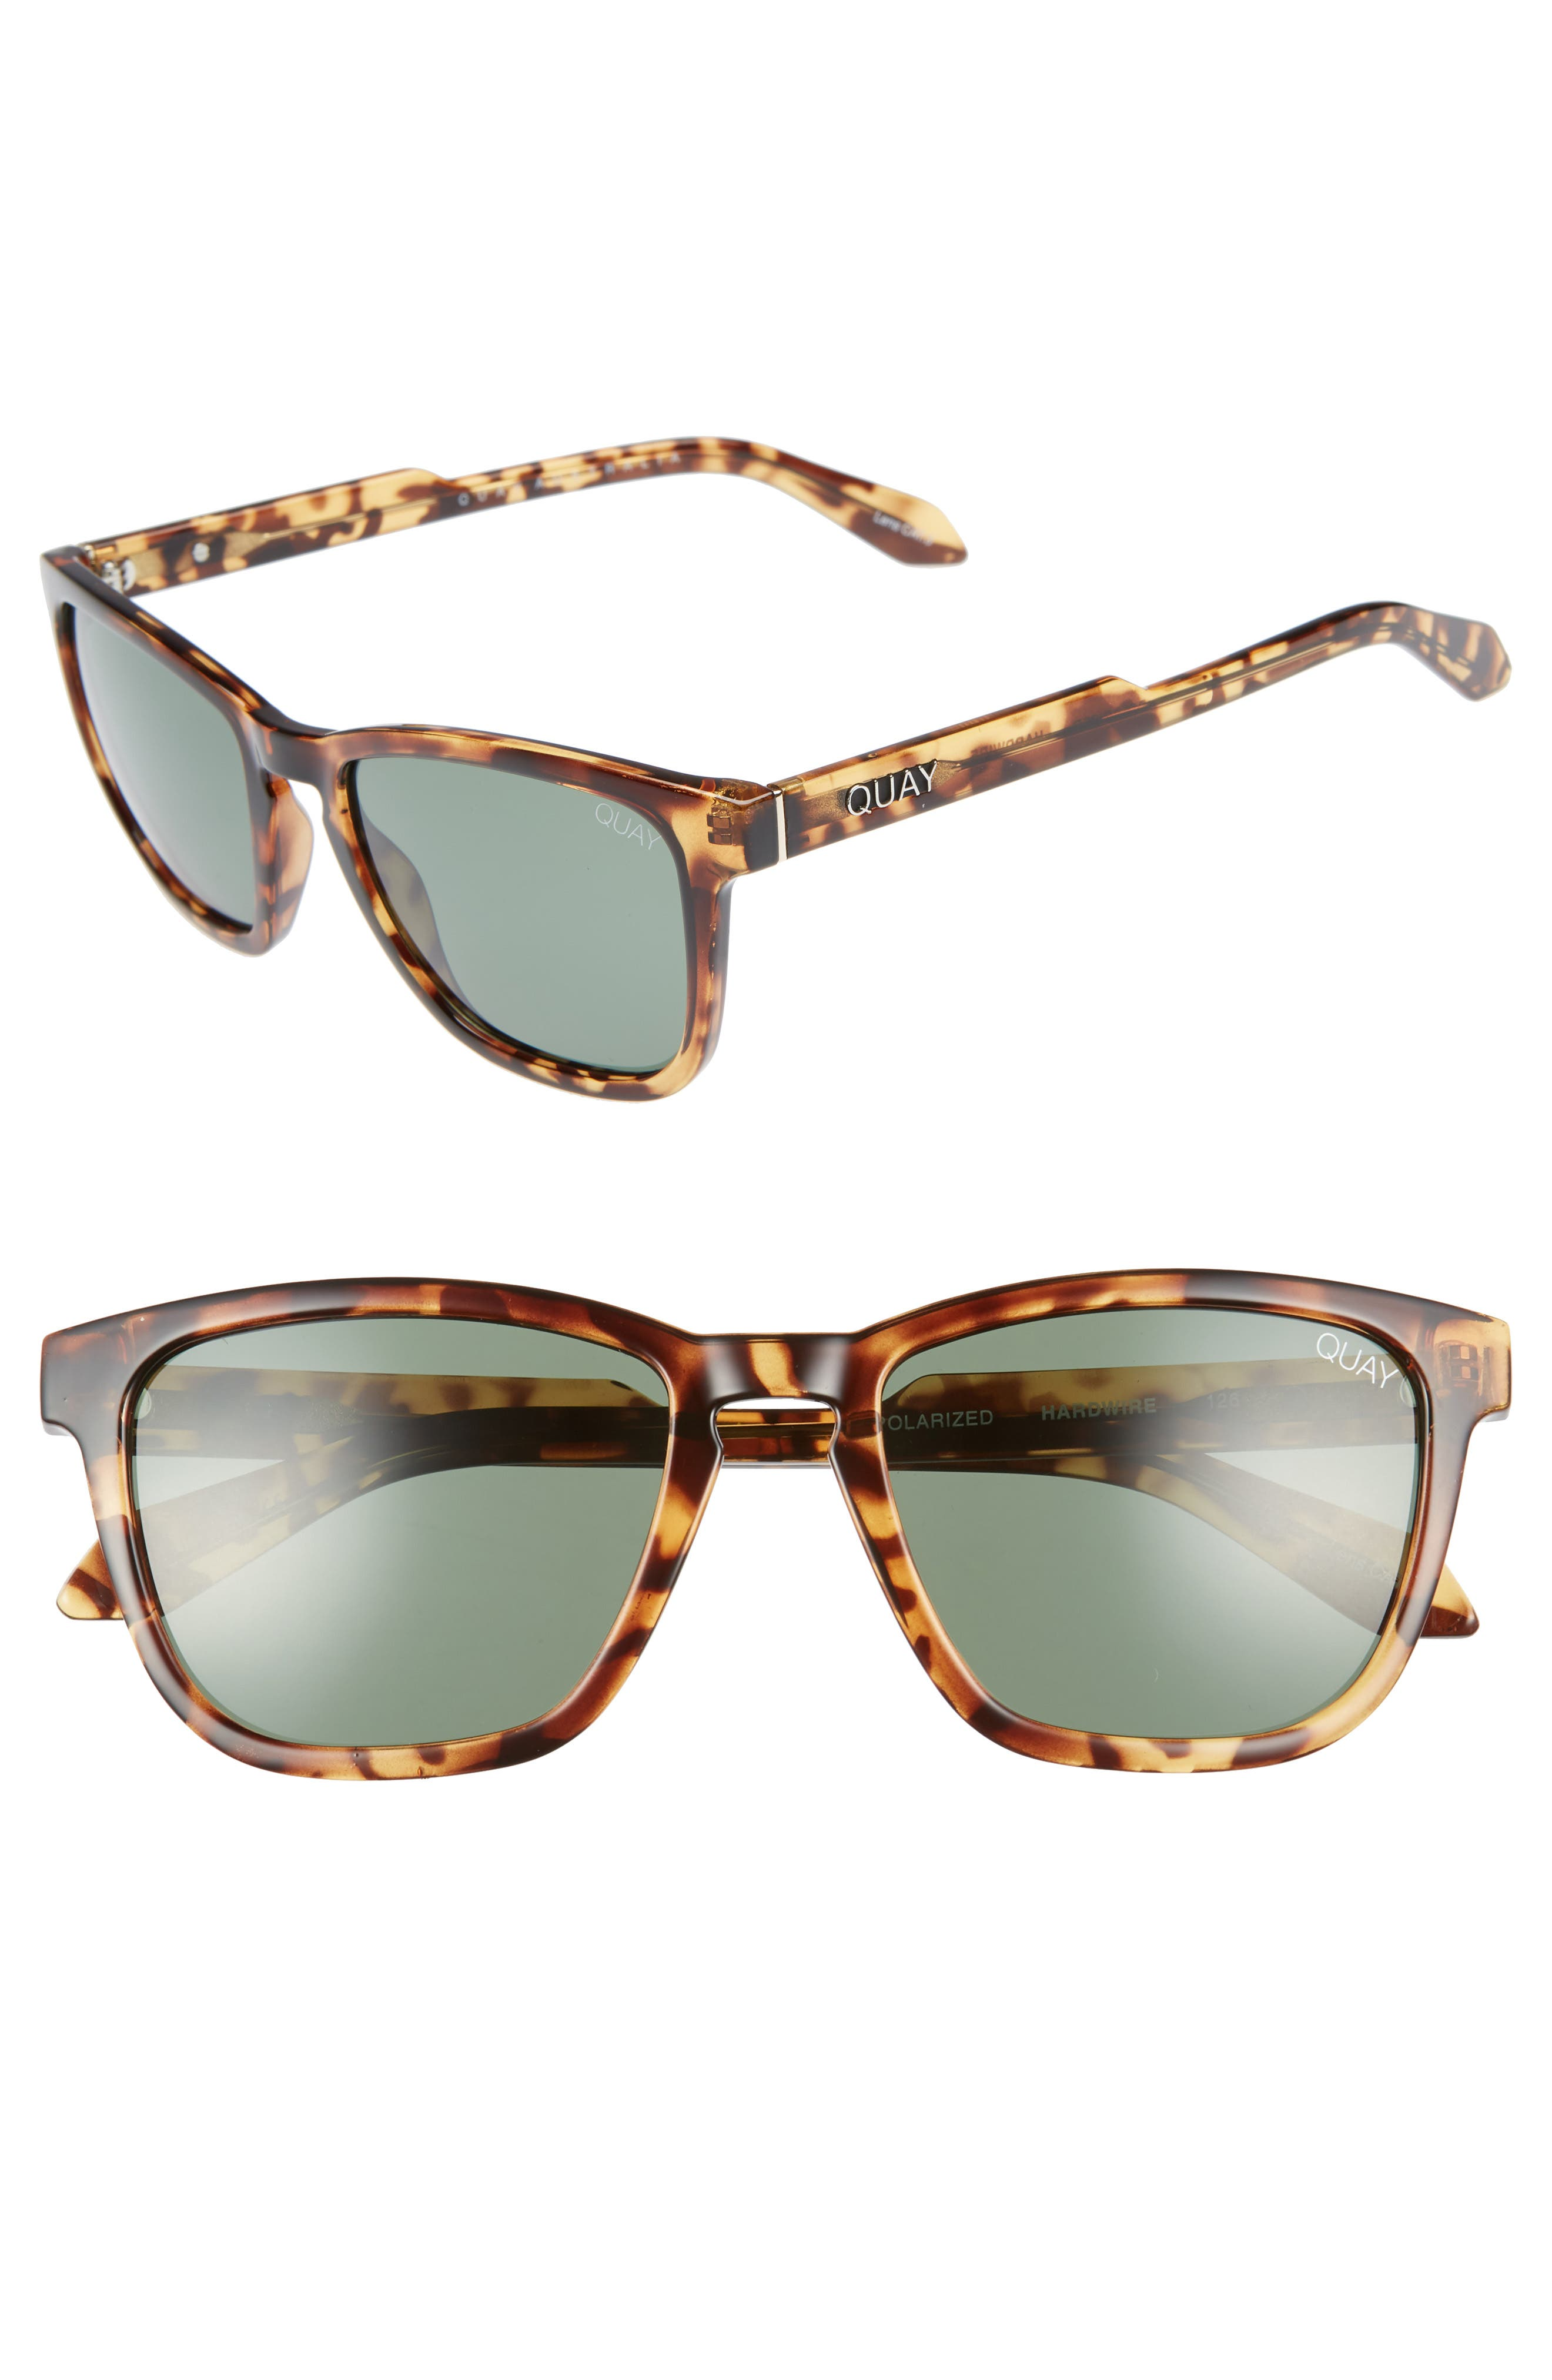 Hardwire 54mm Polarized Sunglasses,                         Main,                         color, TORT/ GREEN LENS